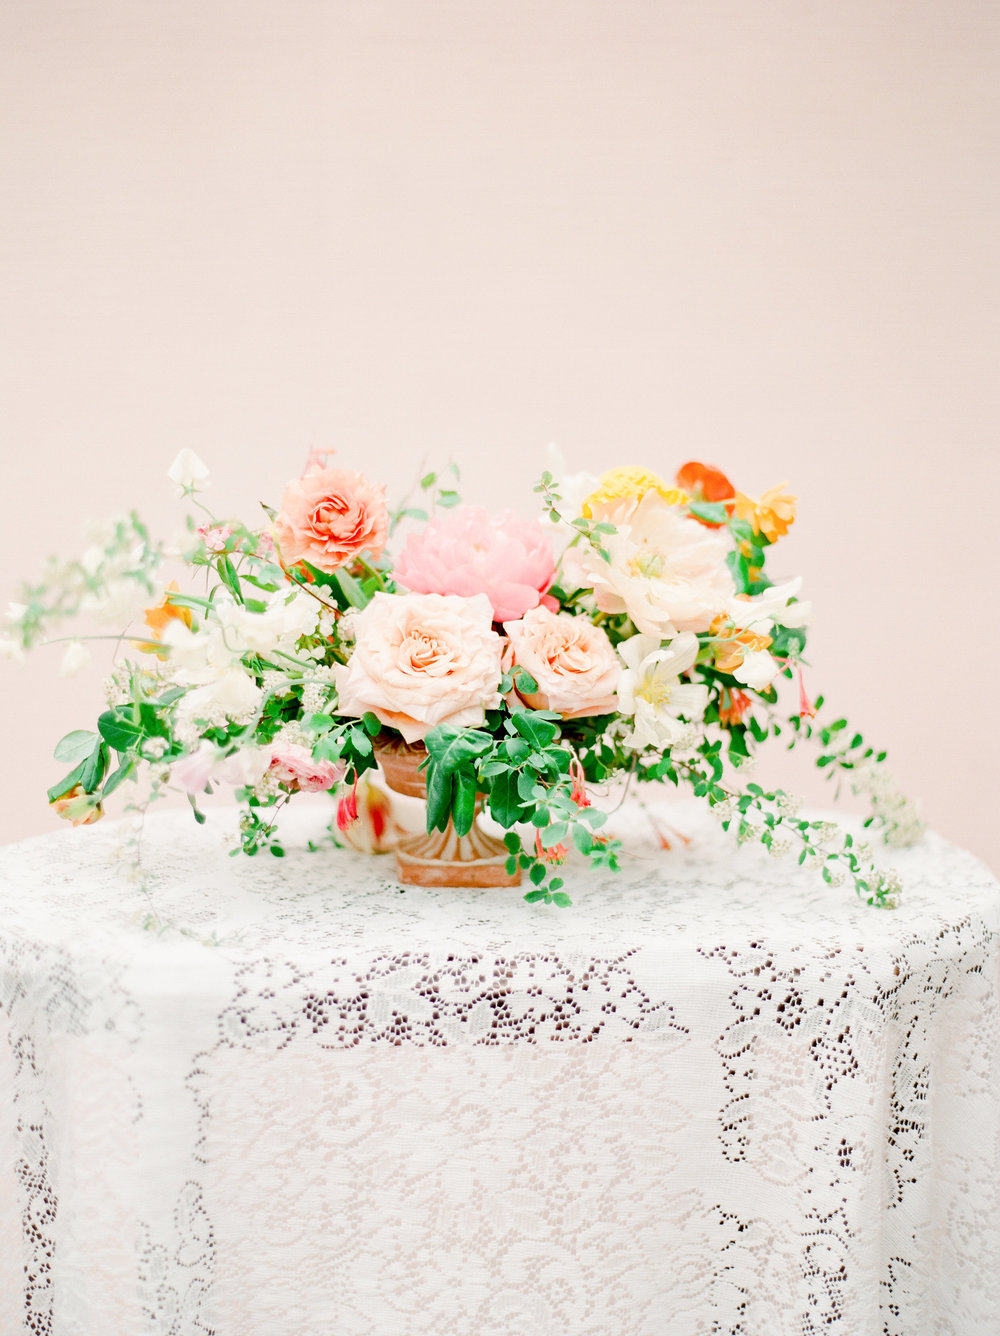 A beautiful floral arrangement paired with a lace overlay creates a beautiful welcome vignette at a wedding. Photo by Julie Paisley. Exquisite florals by Petal and Pine. Styling by Feather + Oak.